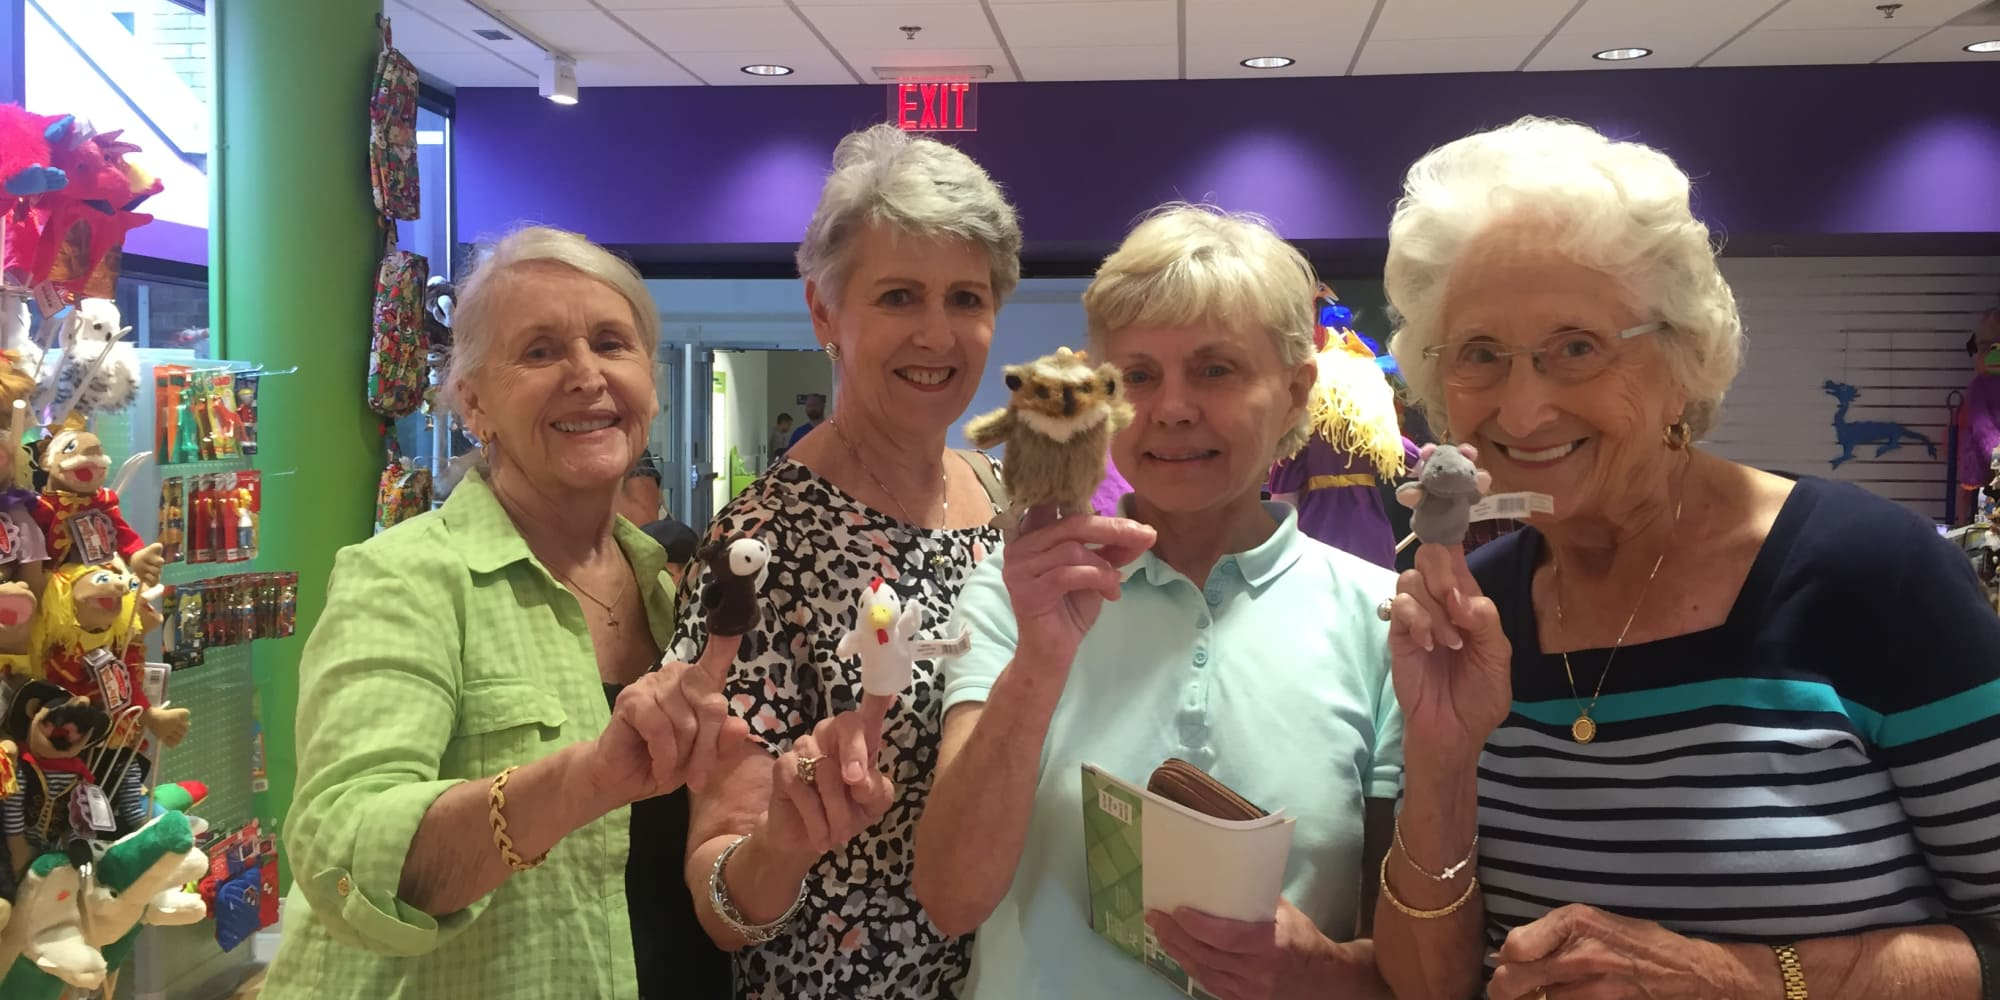 A group of residents from Linwood Estates Gracious Retirement Living in Lawrenceville, Georgia holding finger puppets in a store